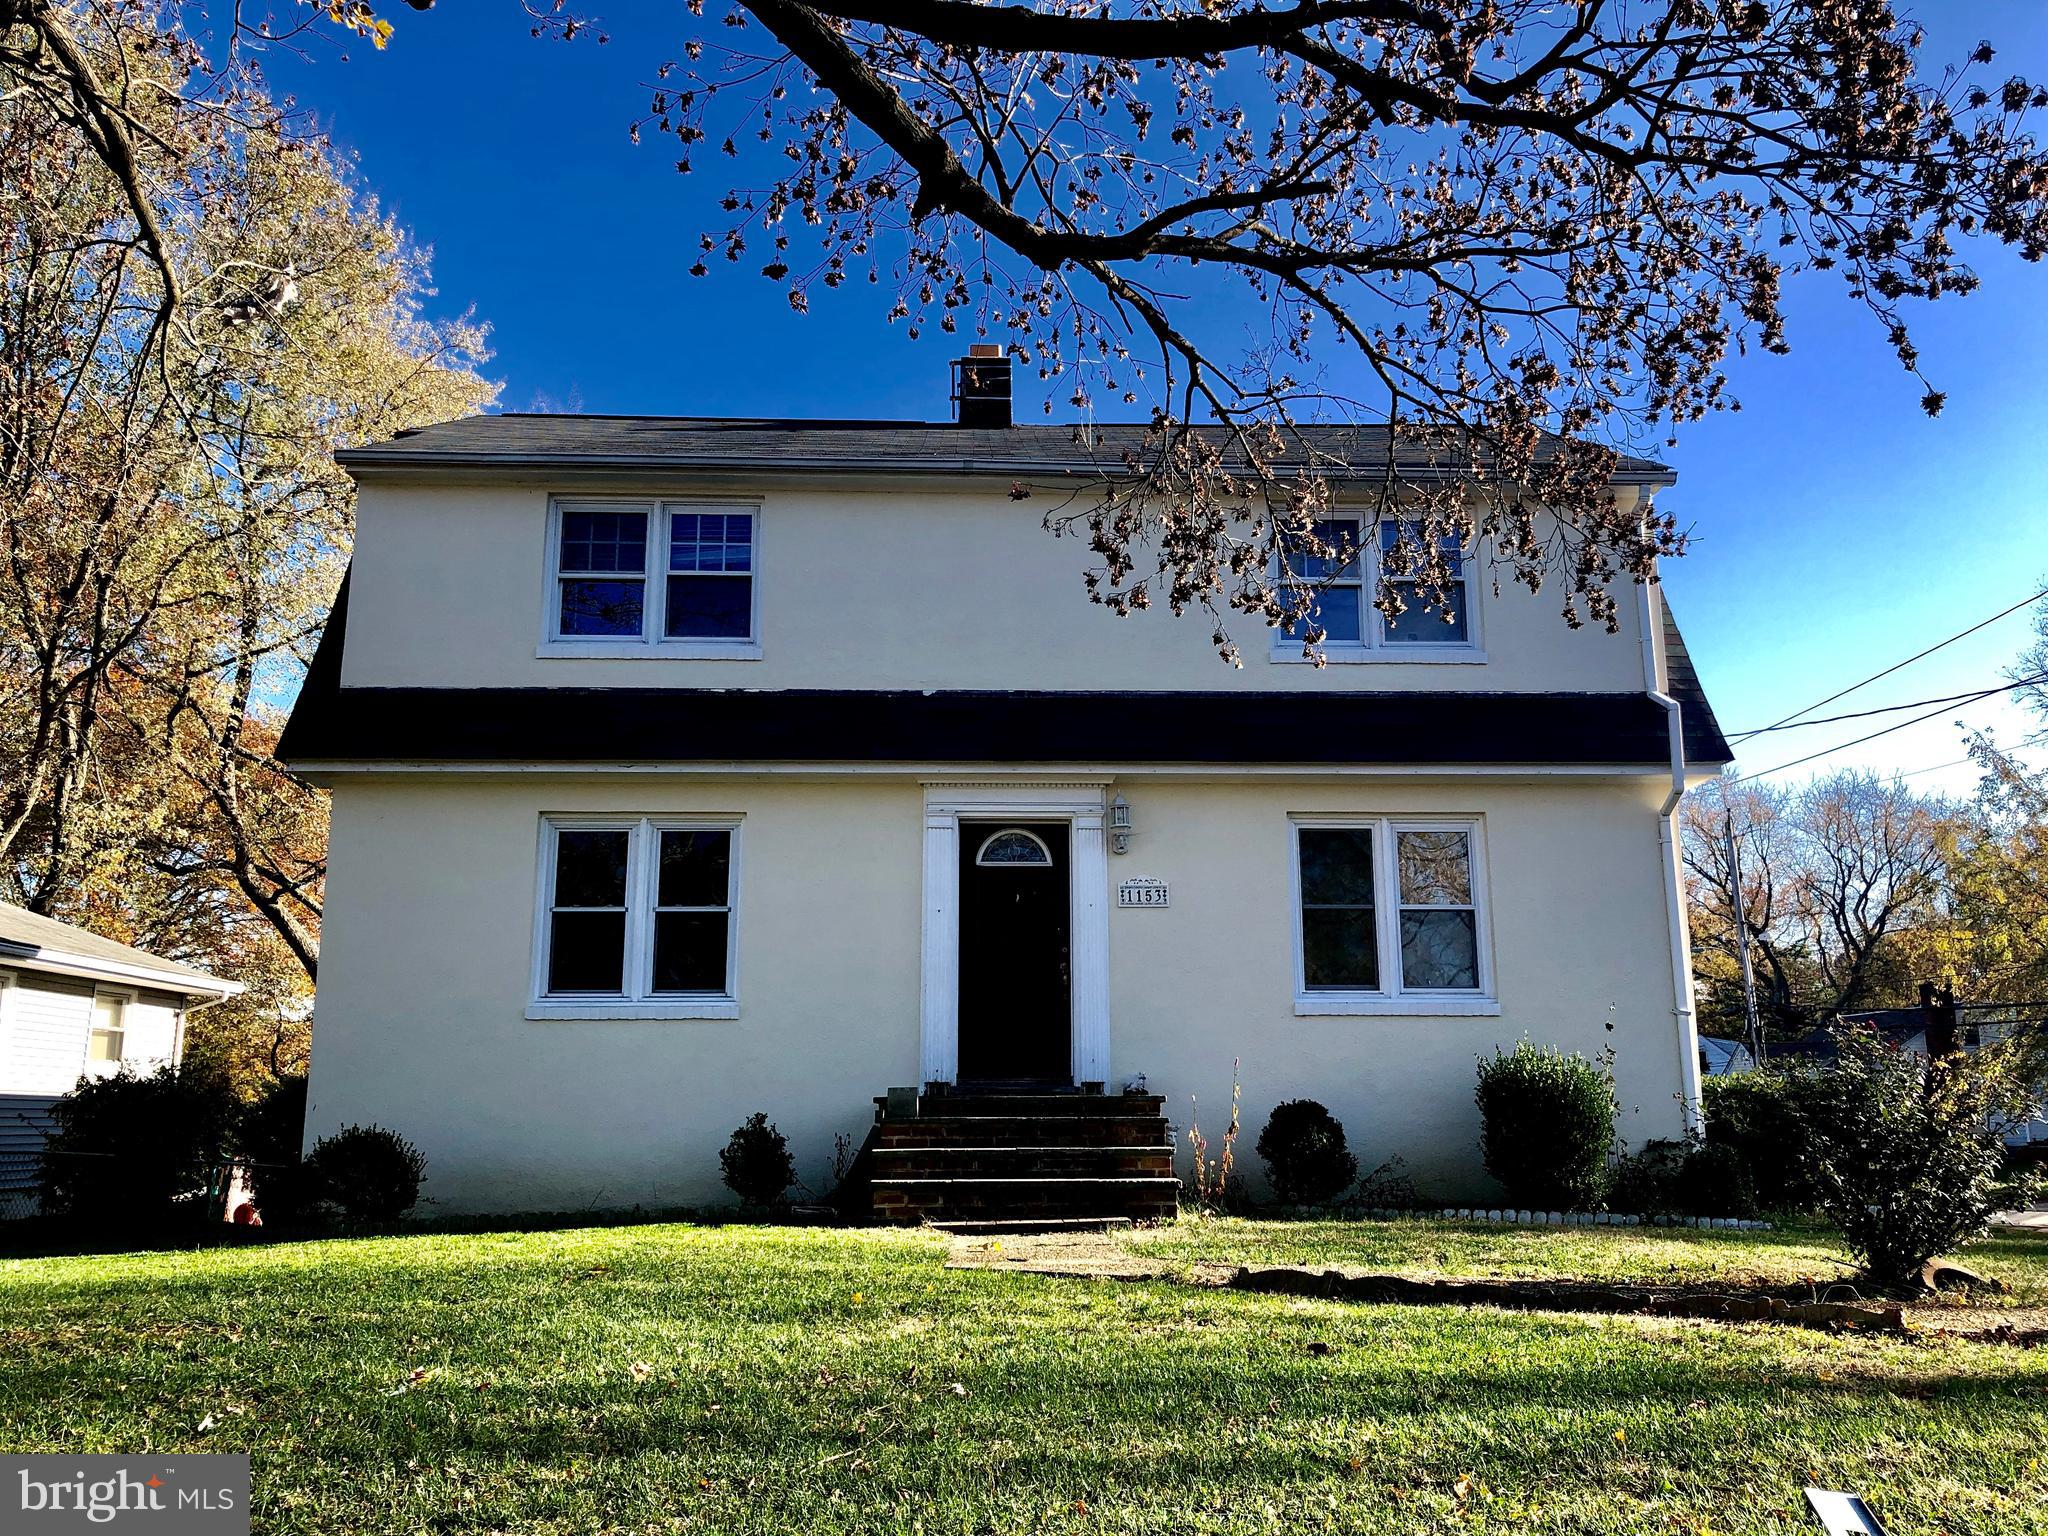 1153 TYLER Ave, Annapolis, MD, 21403